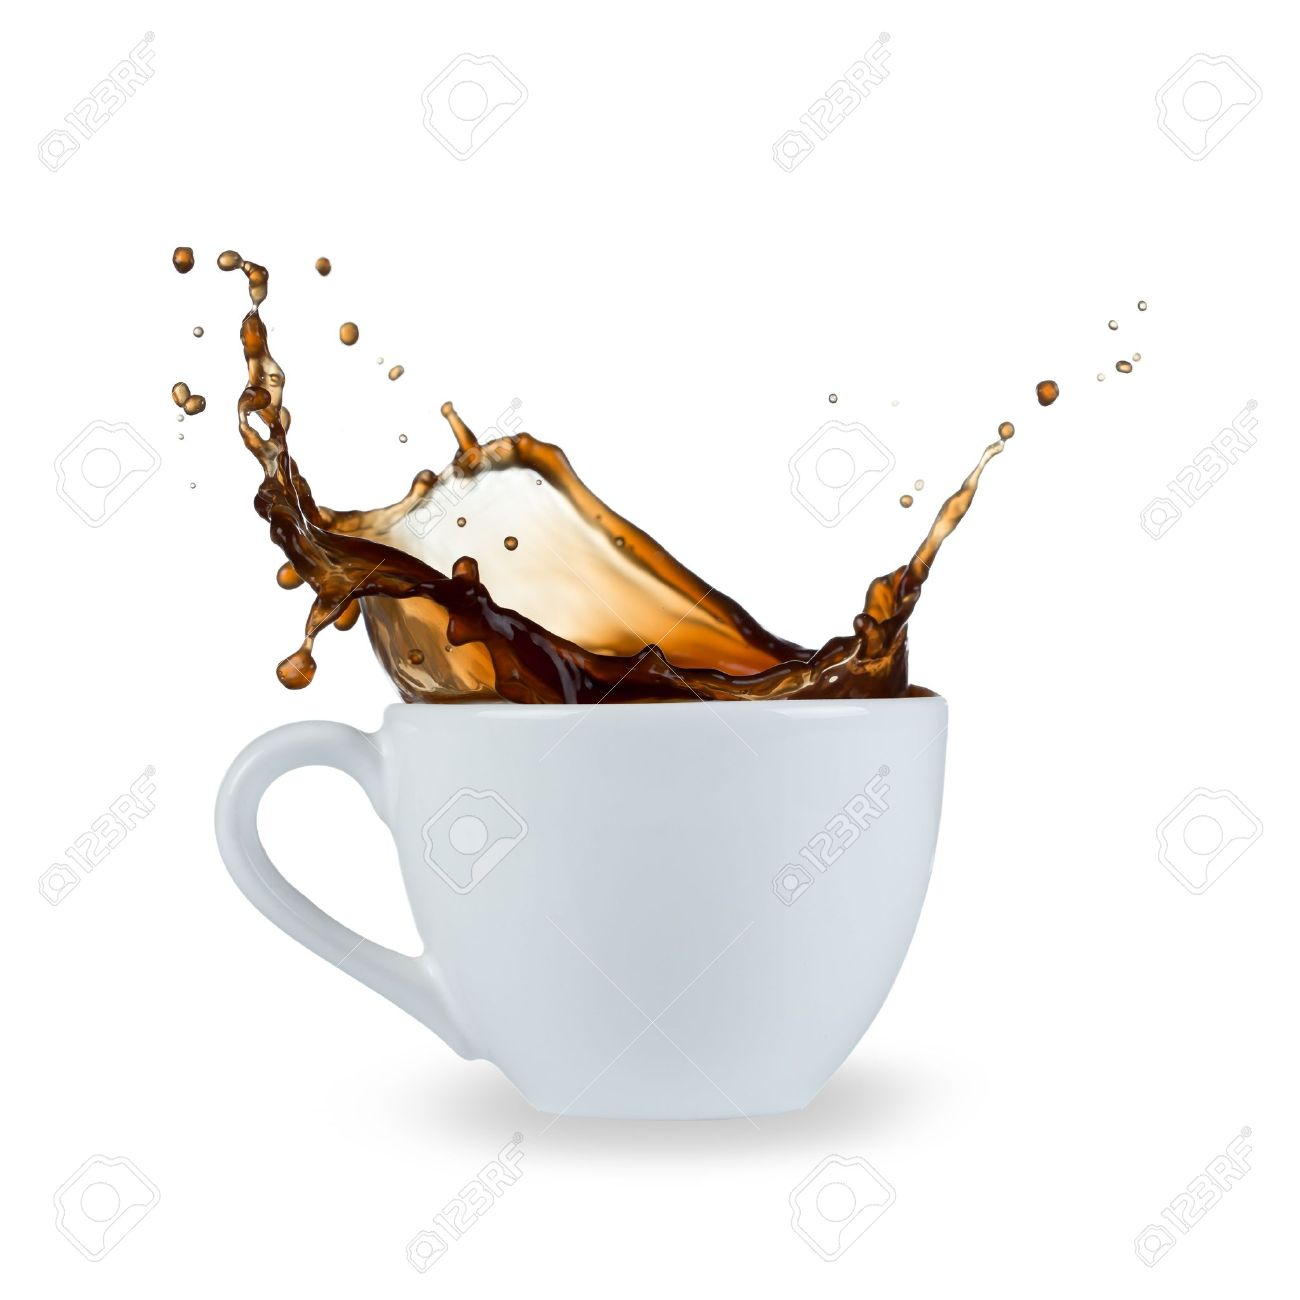 Coffee Splash Isolated On White Background Stock Photo Picture And Royalty Free Image Image 20303895